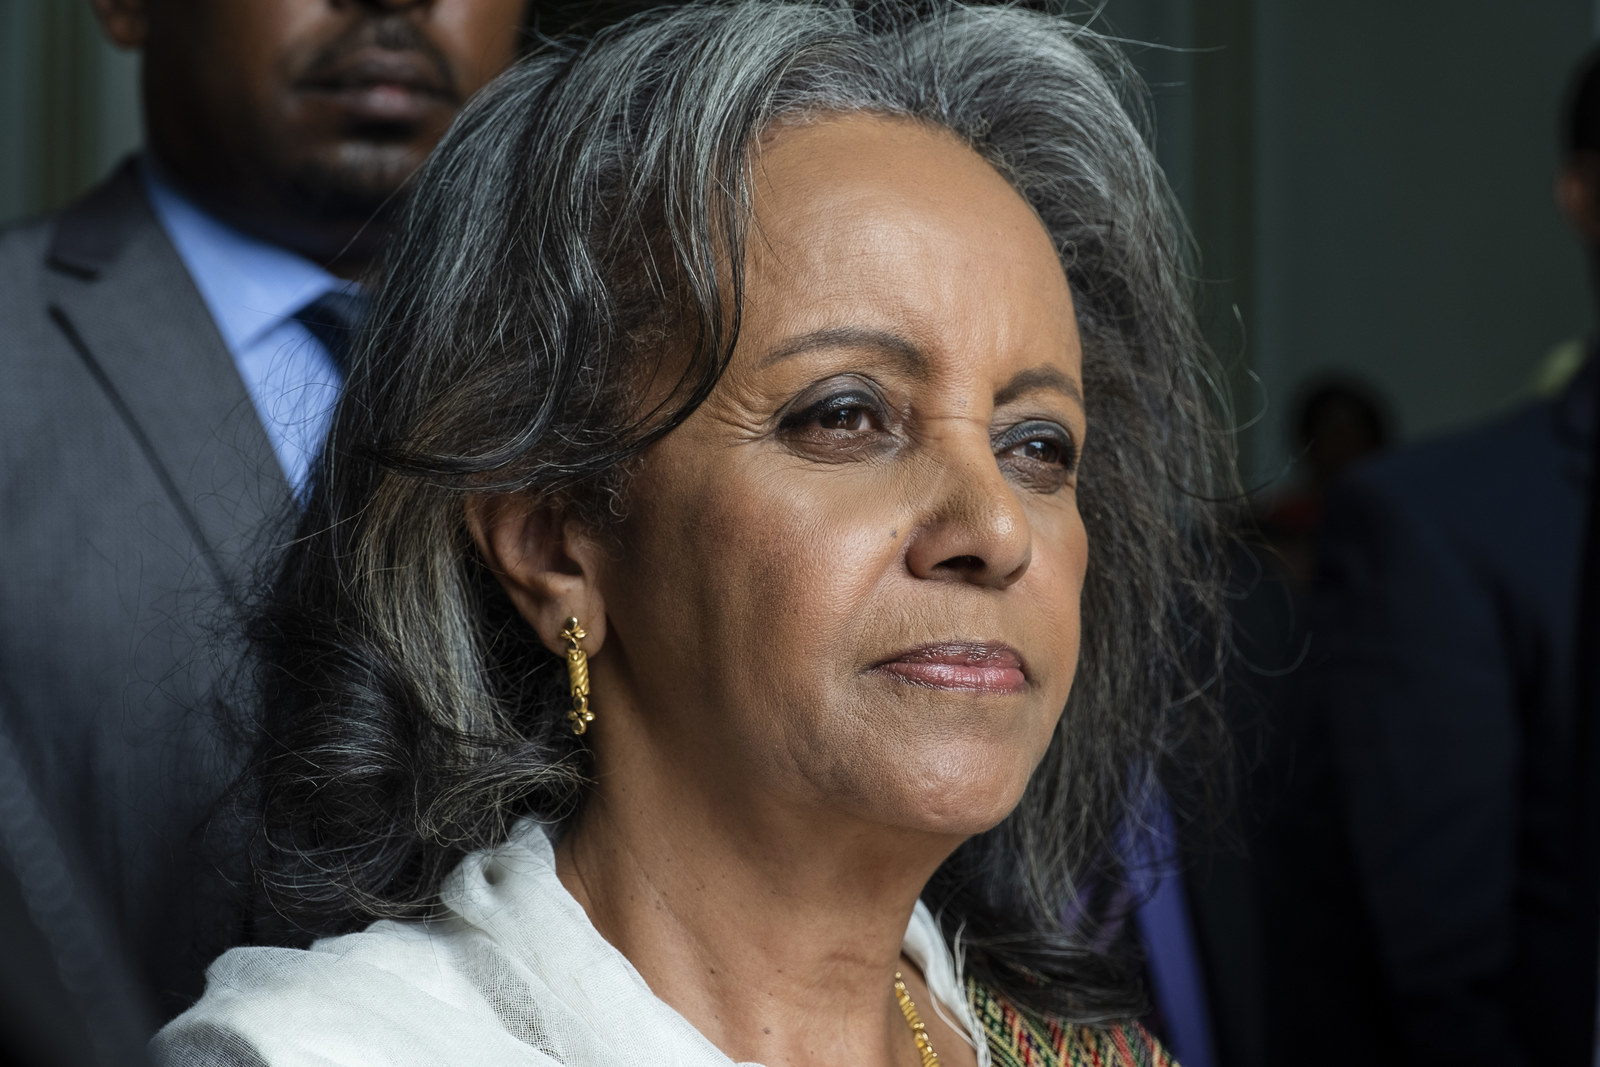 Ethiopia Has Its First Female President, And She's Pretty Badass